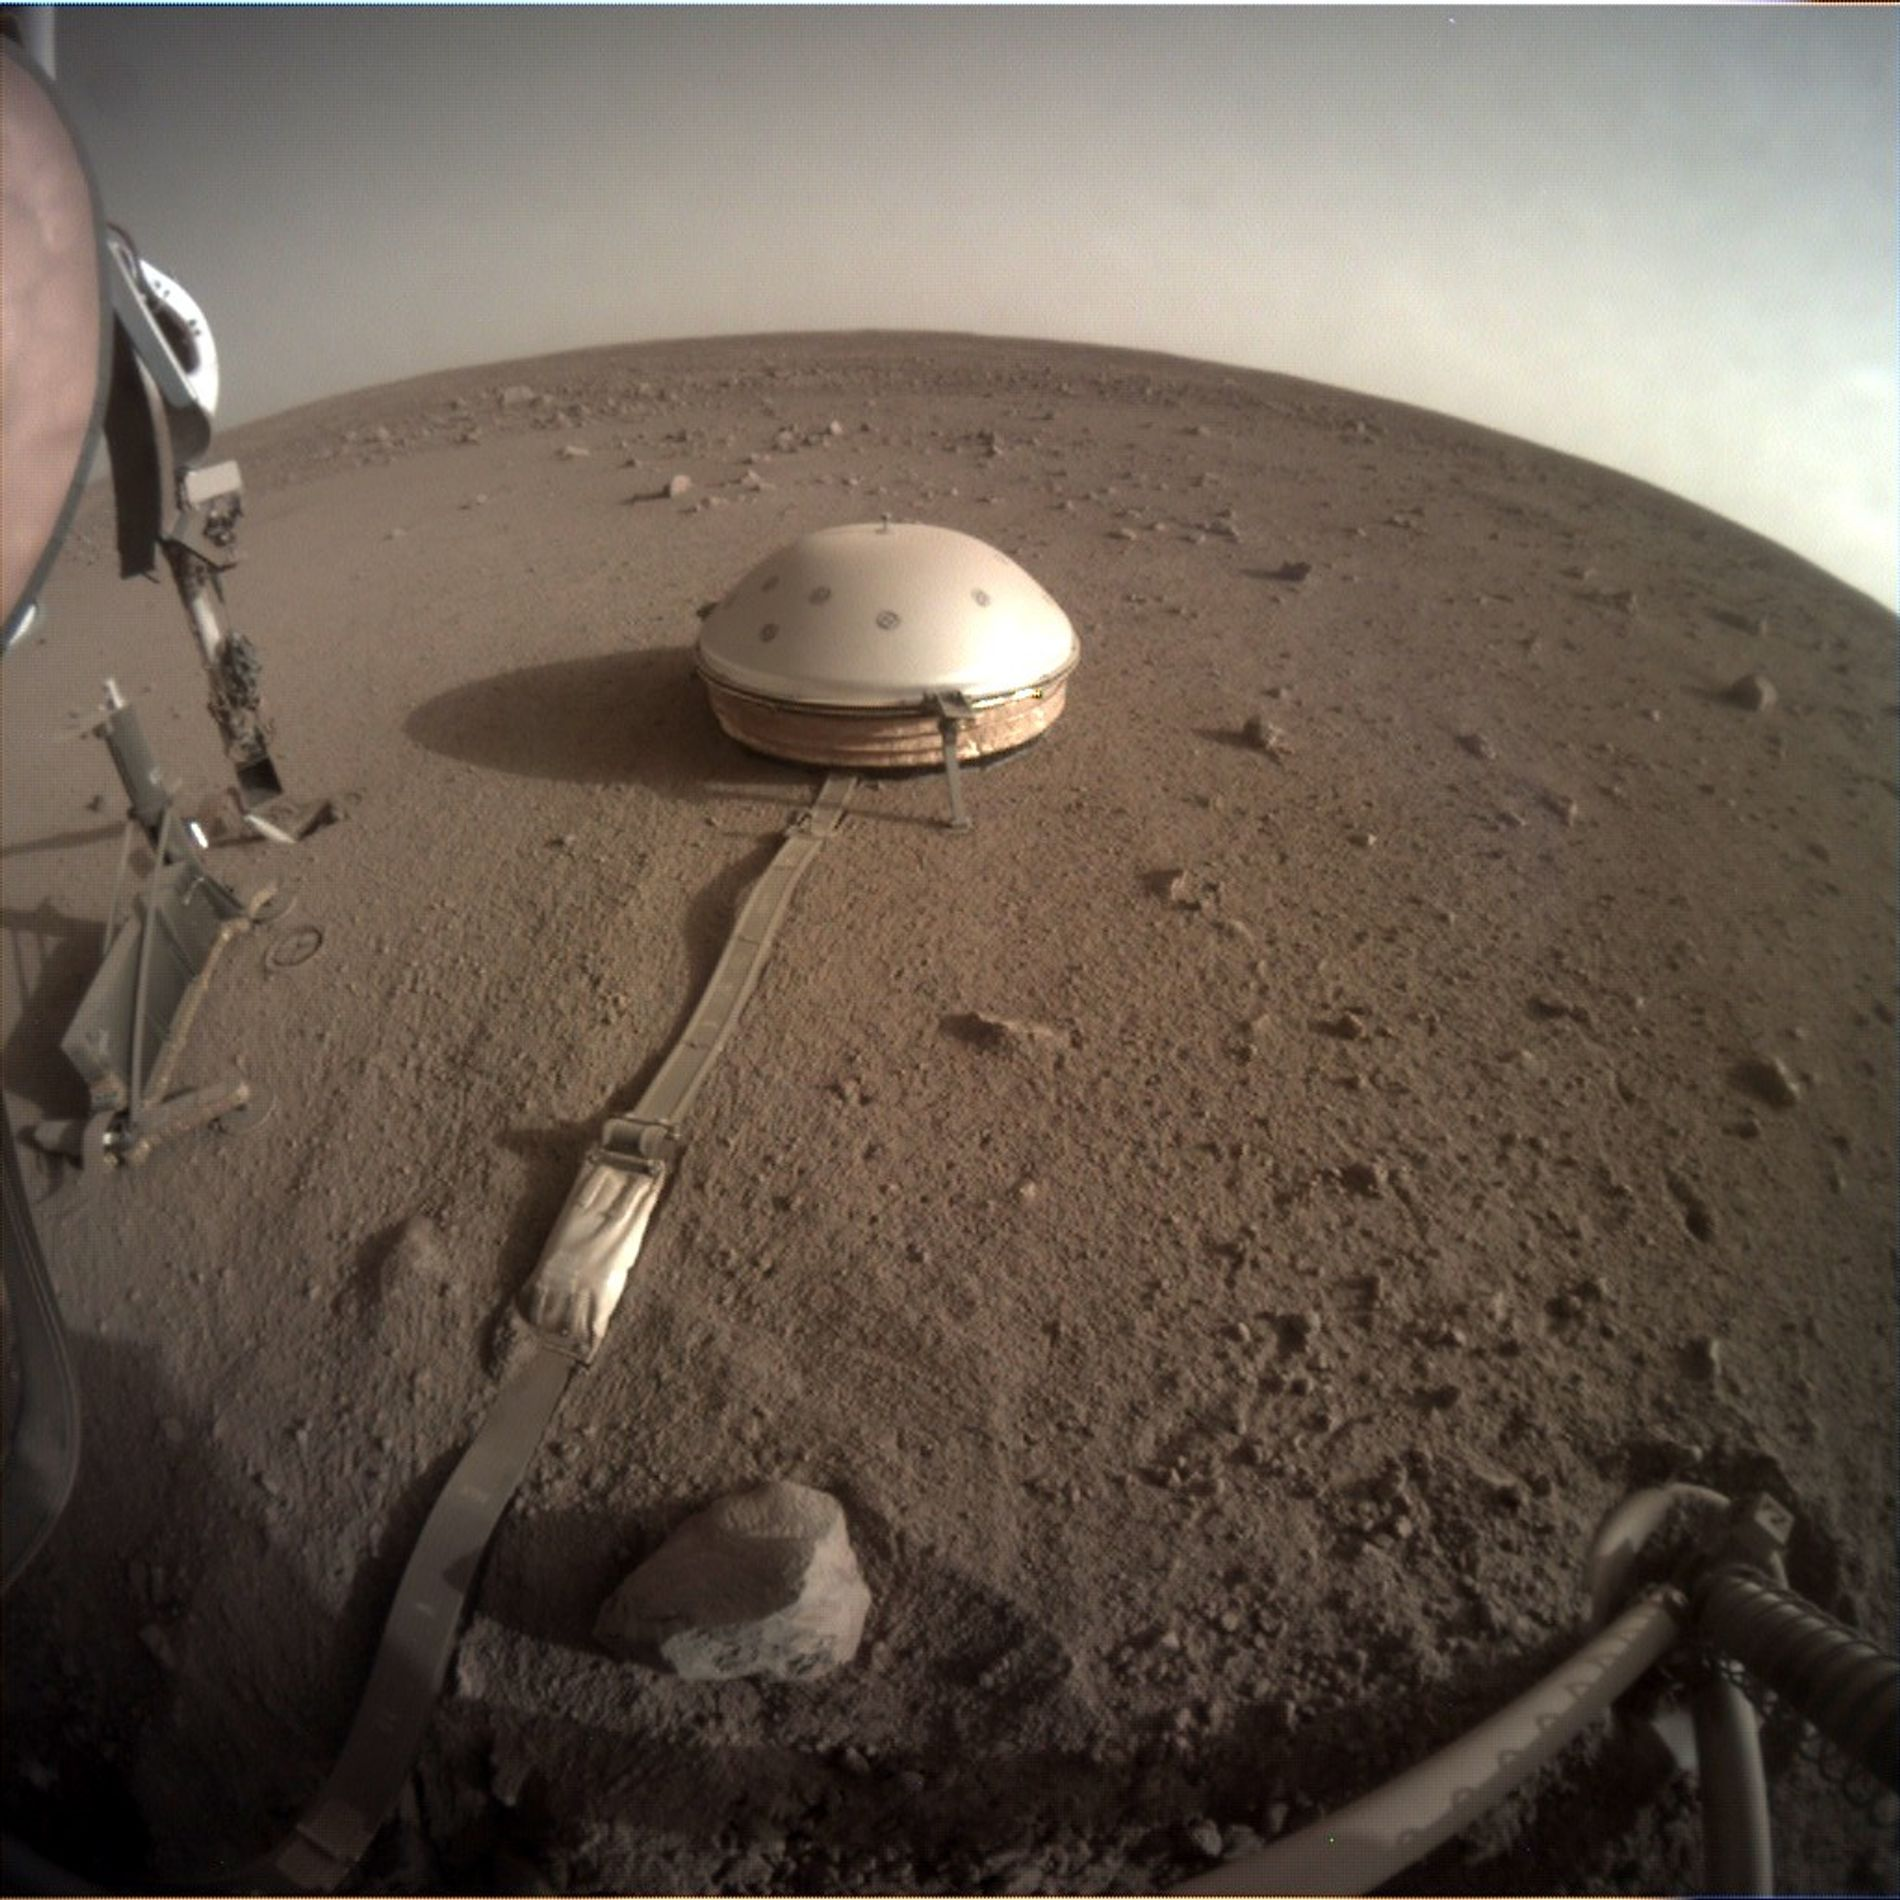 InSight is designed to map out Mars's interior structures. Among the spacecraft's many instruments, InSight carries ...